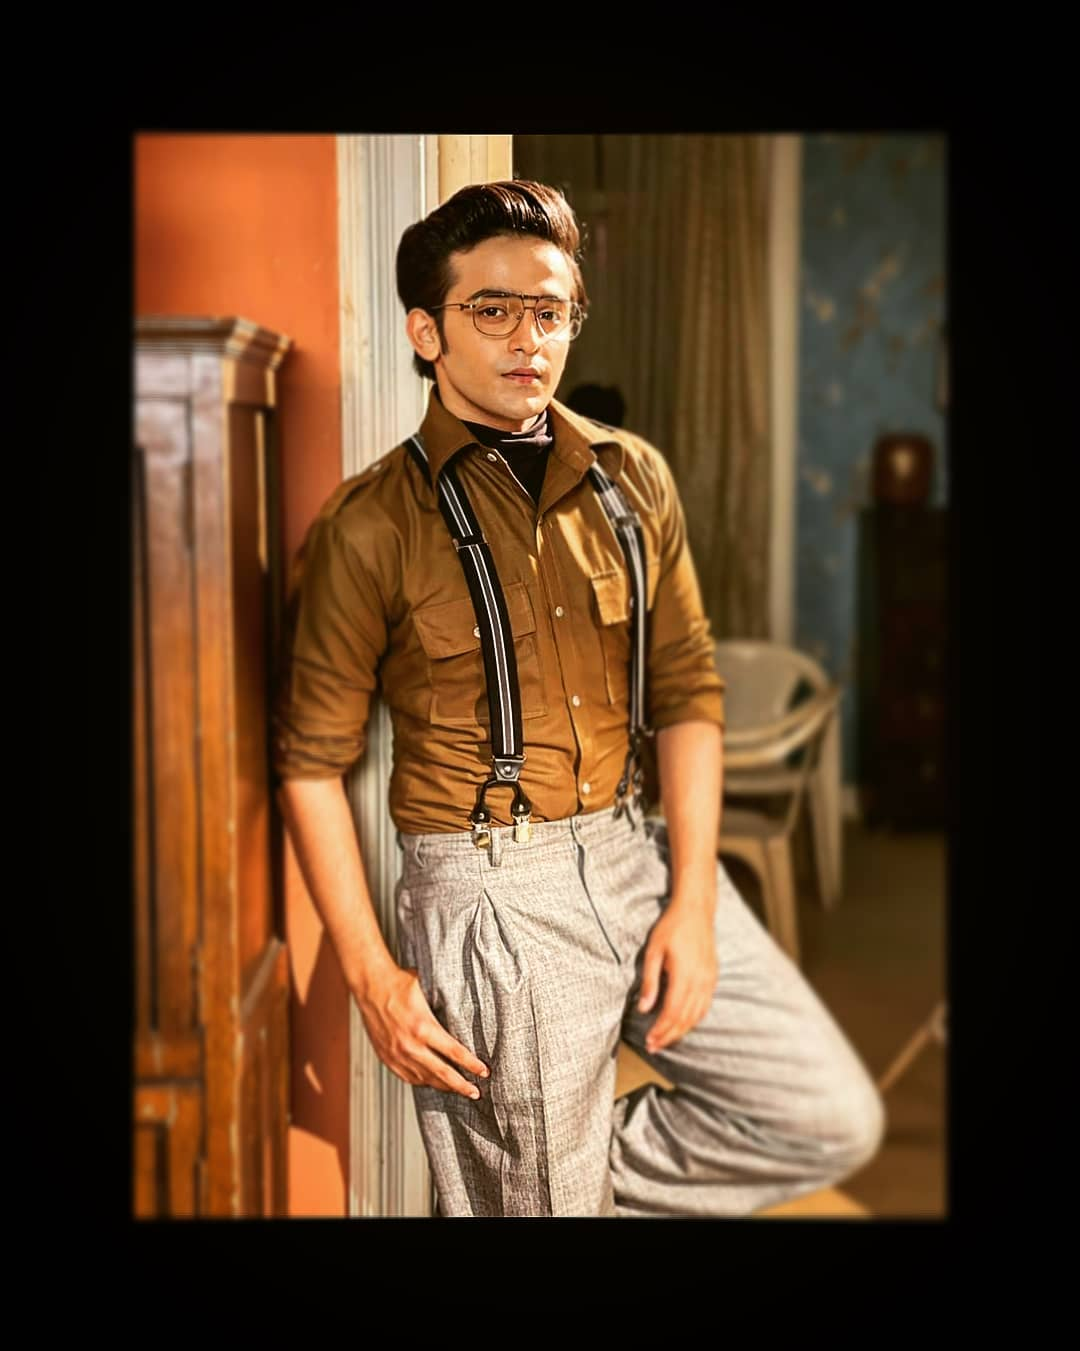 Pravisht Mishra Wiki, Biography, Career, Net Worth, Age, Body Measurements, Success Story, Personal Life, Girlfriend, Education, Family, and Social Life